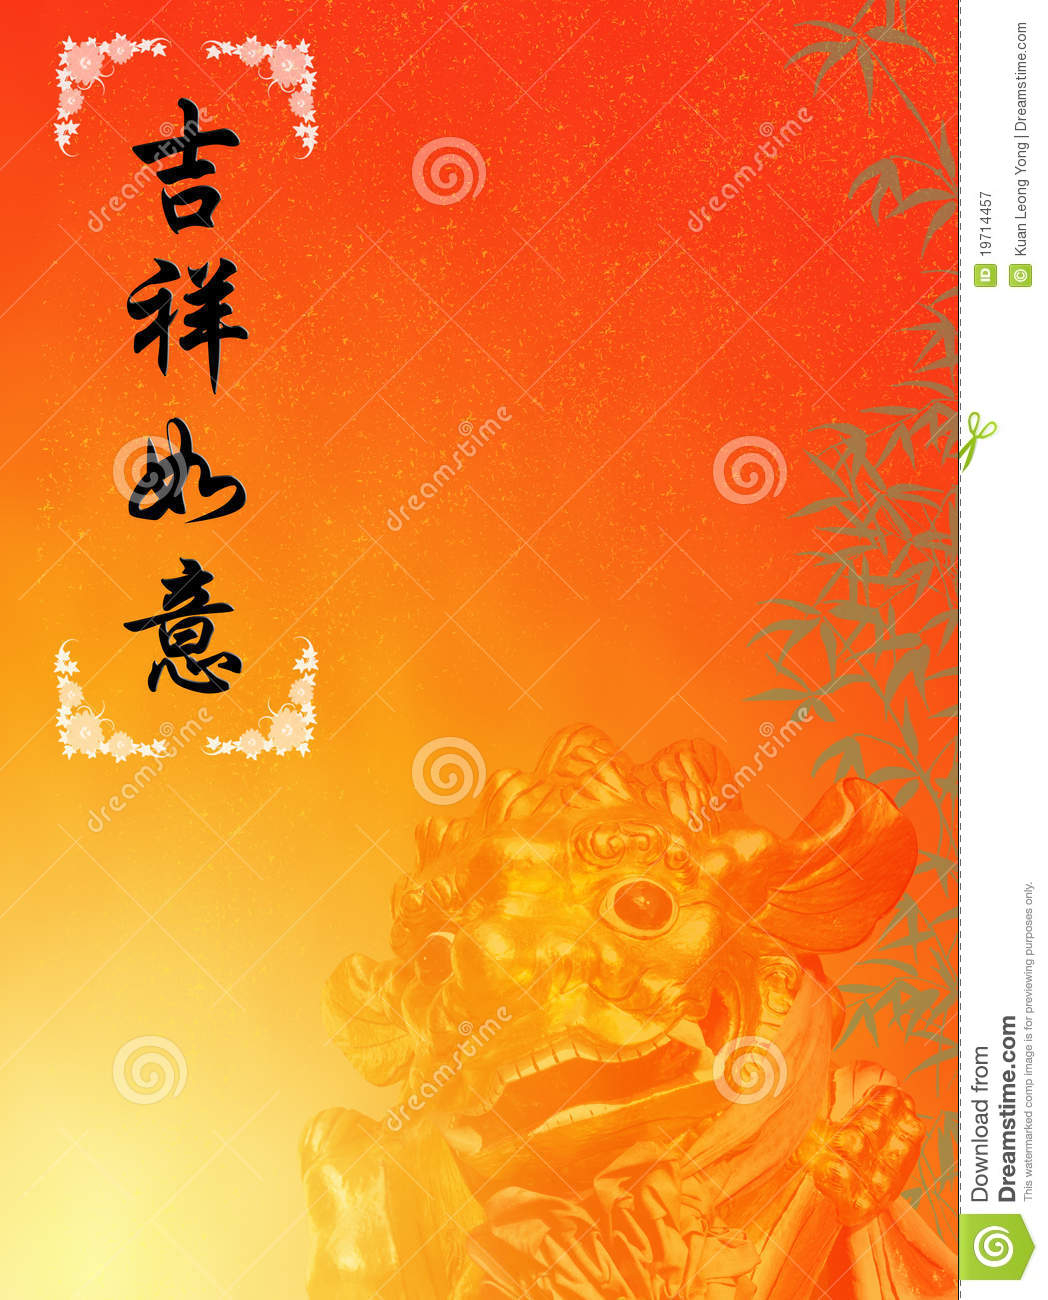 chinese new year card template stock illustration